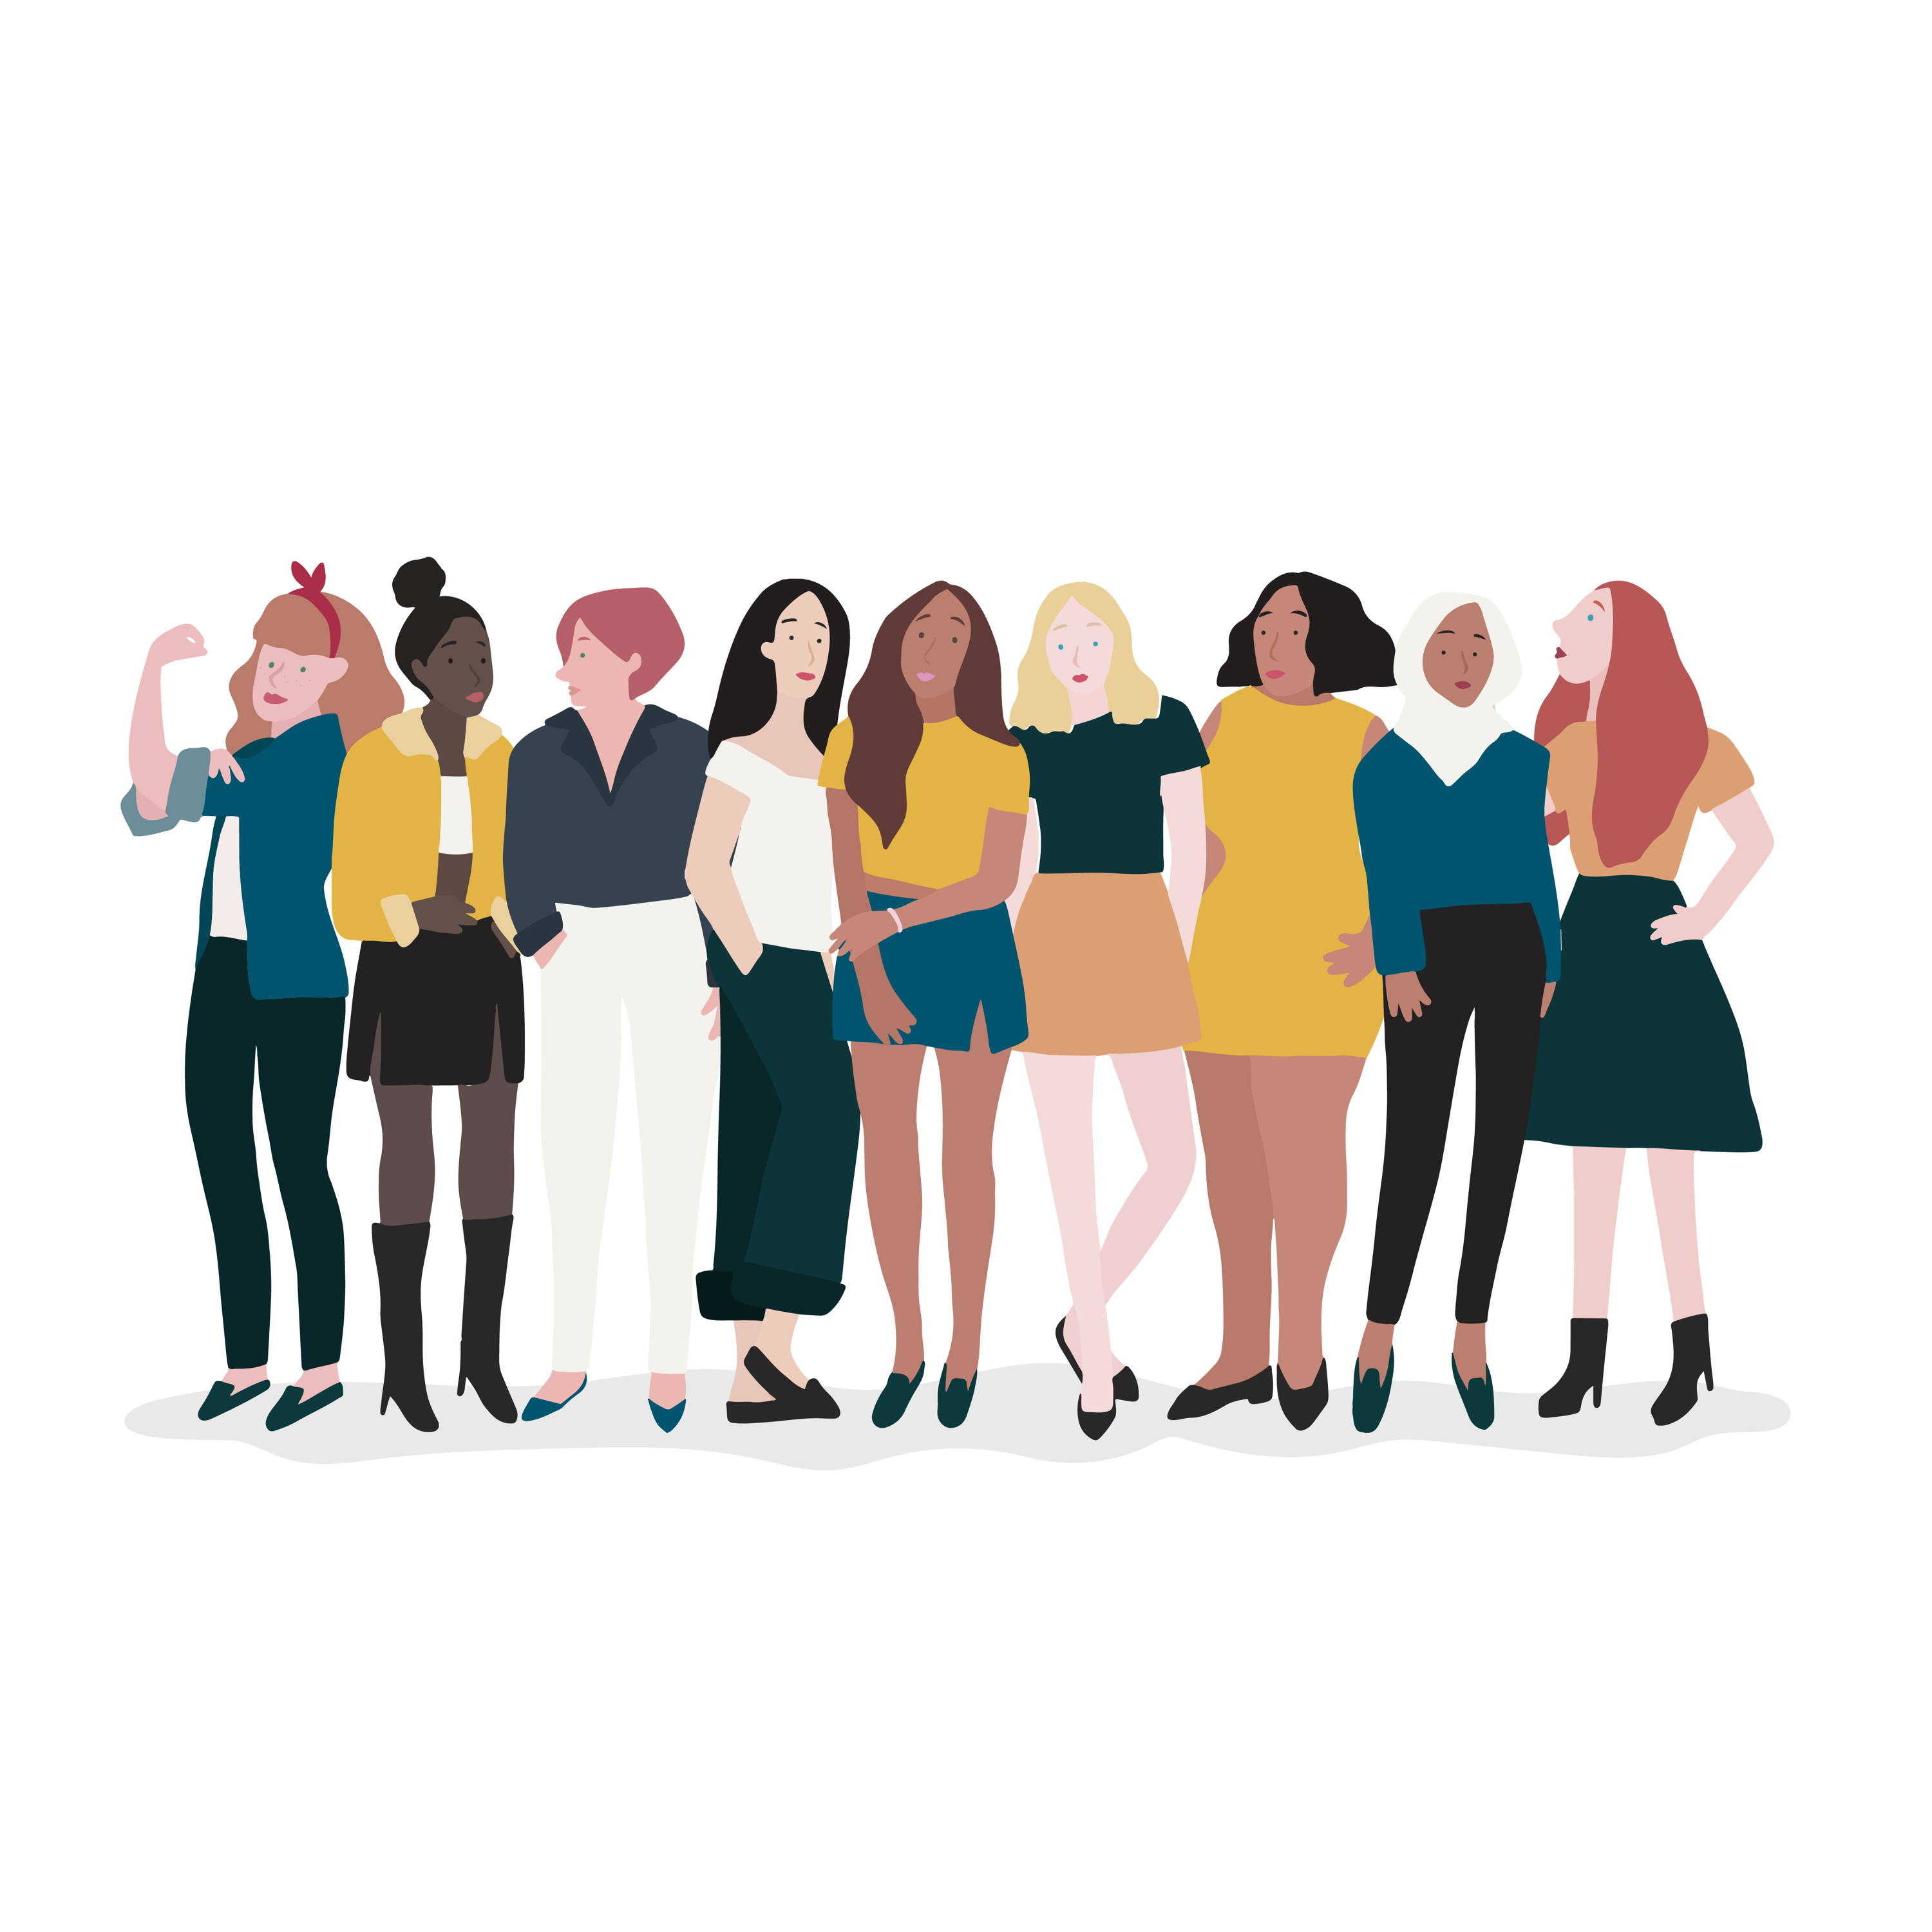 Women Of Different Body Shapes